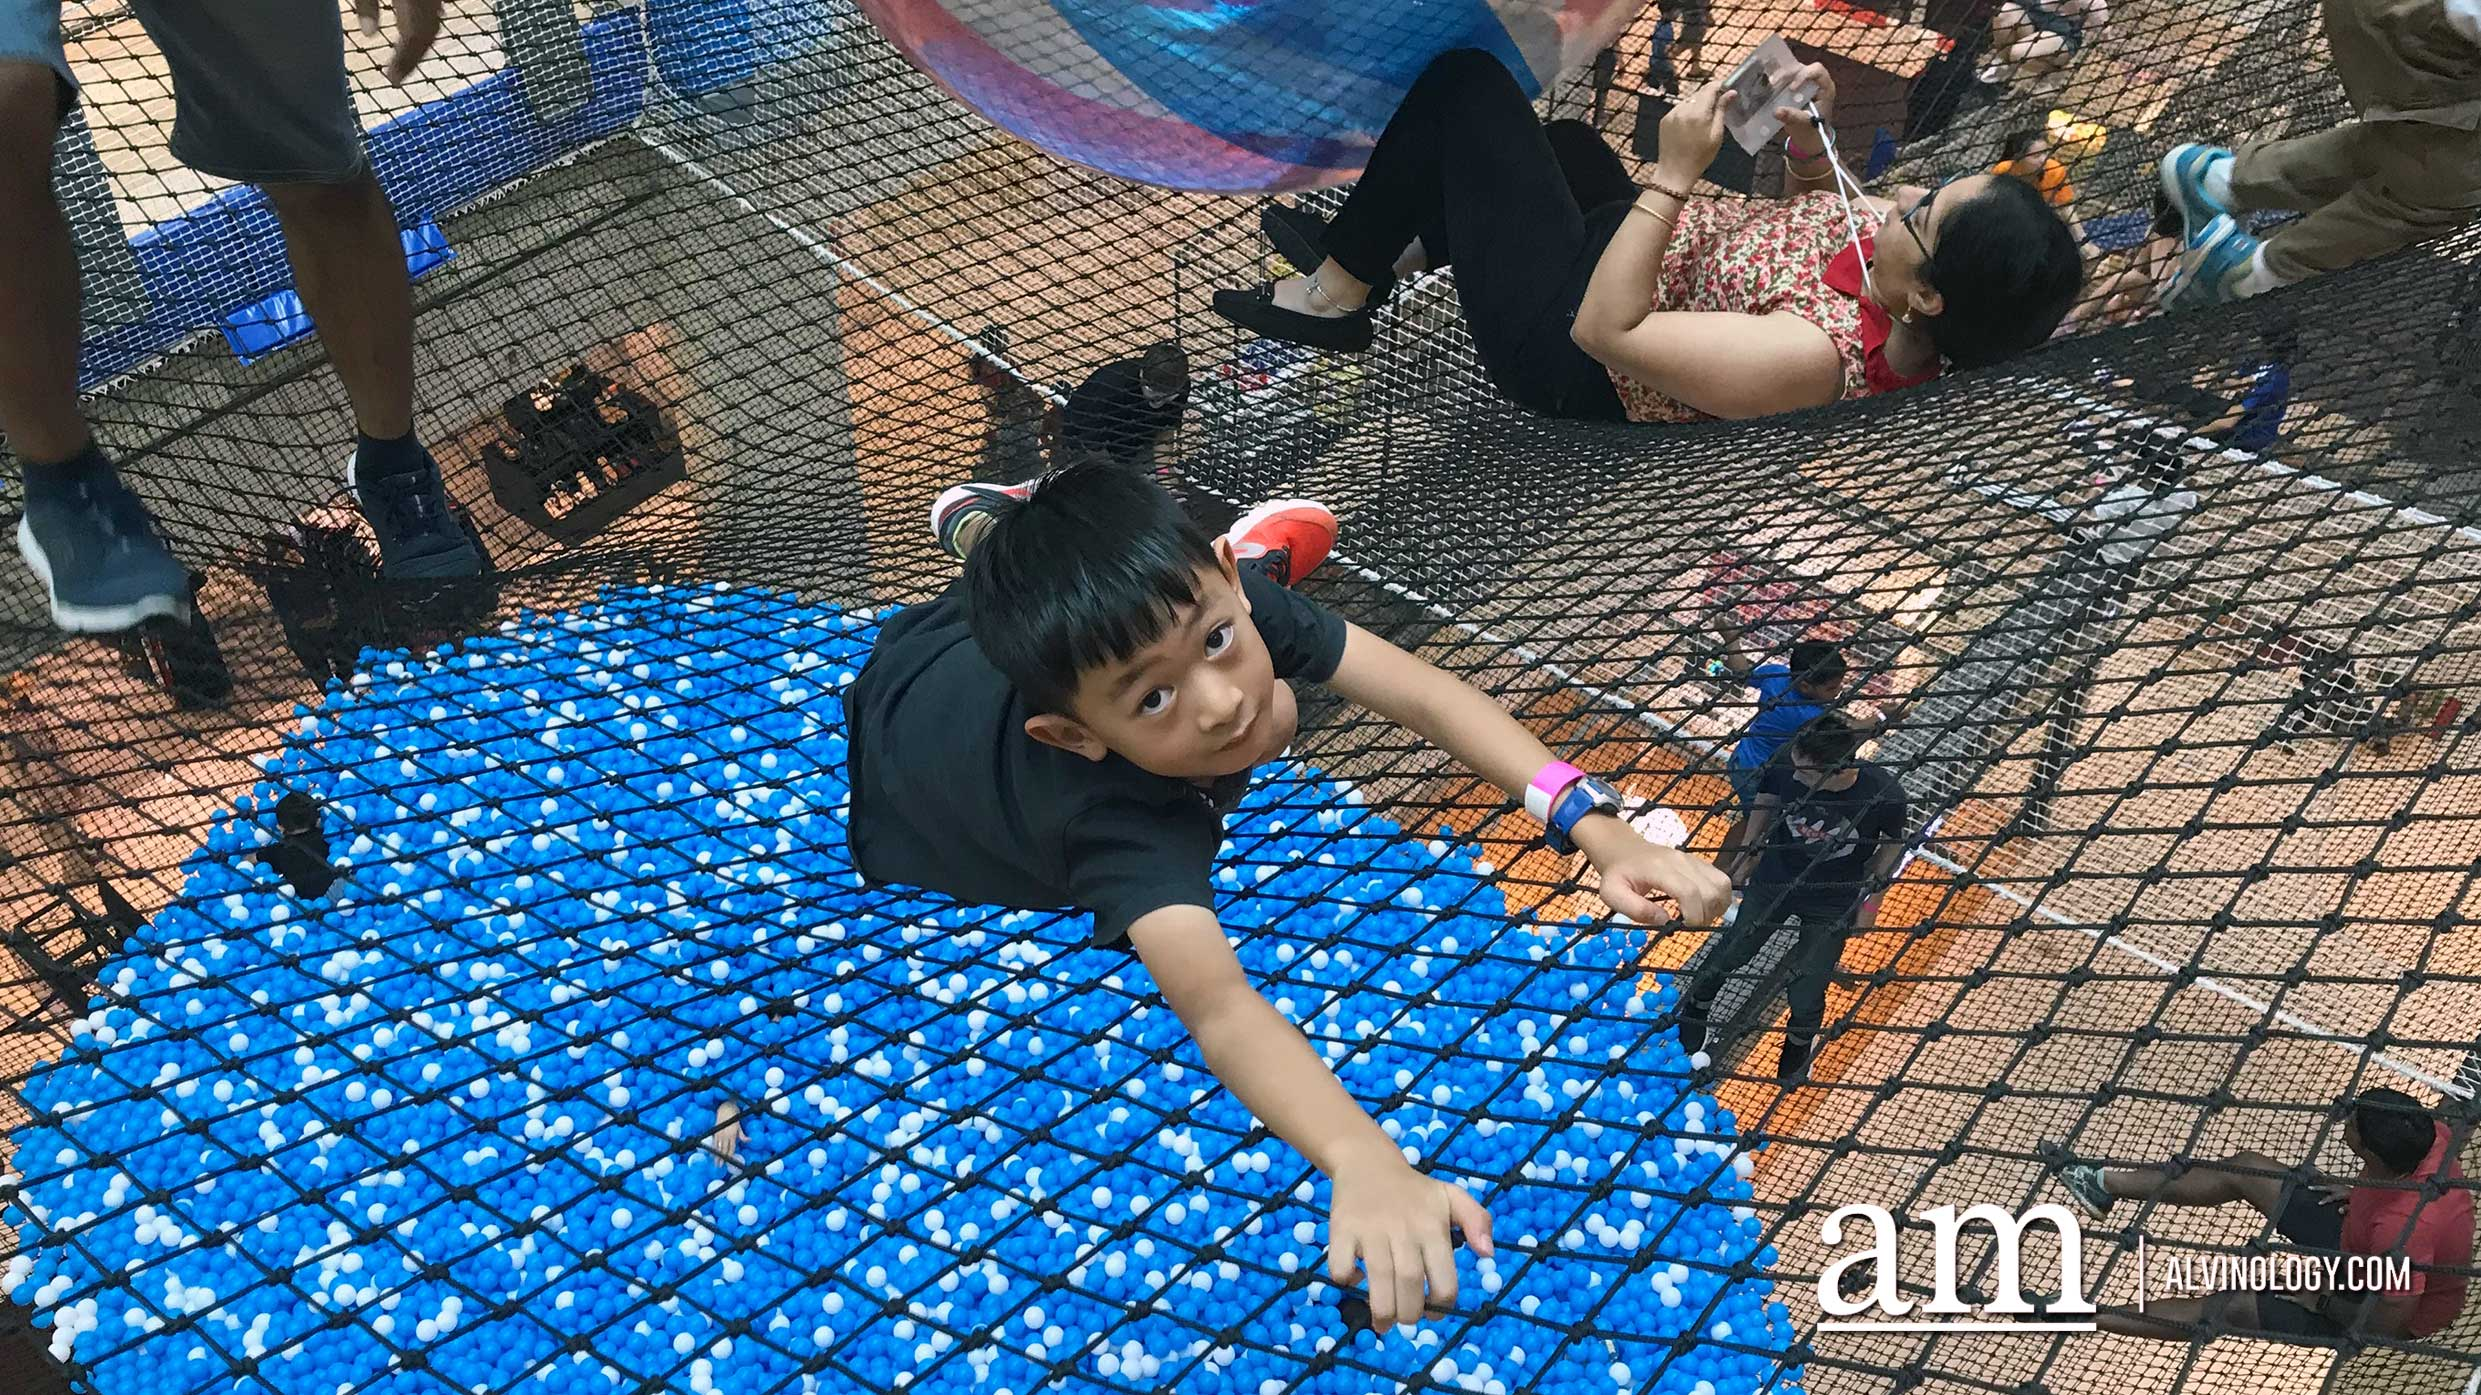 Airzone at City Square Mall - the world's first indoor suspended net playground - Alvinology